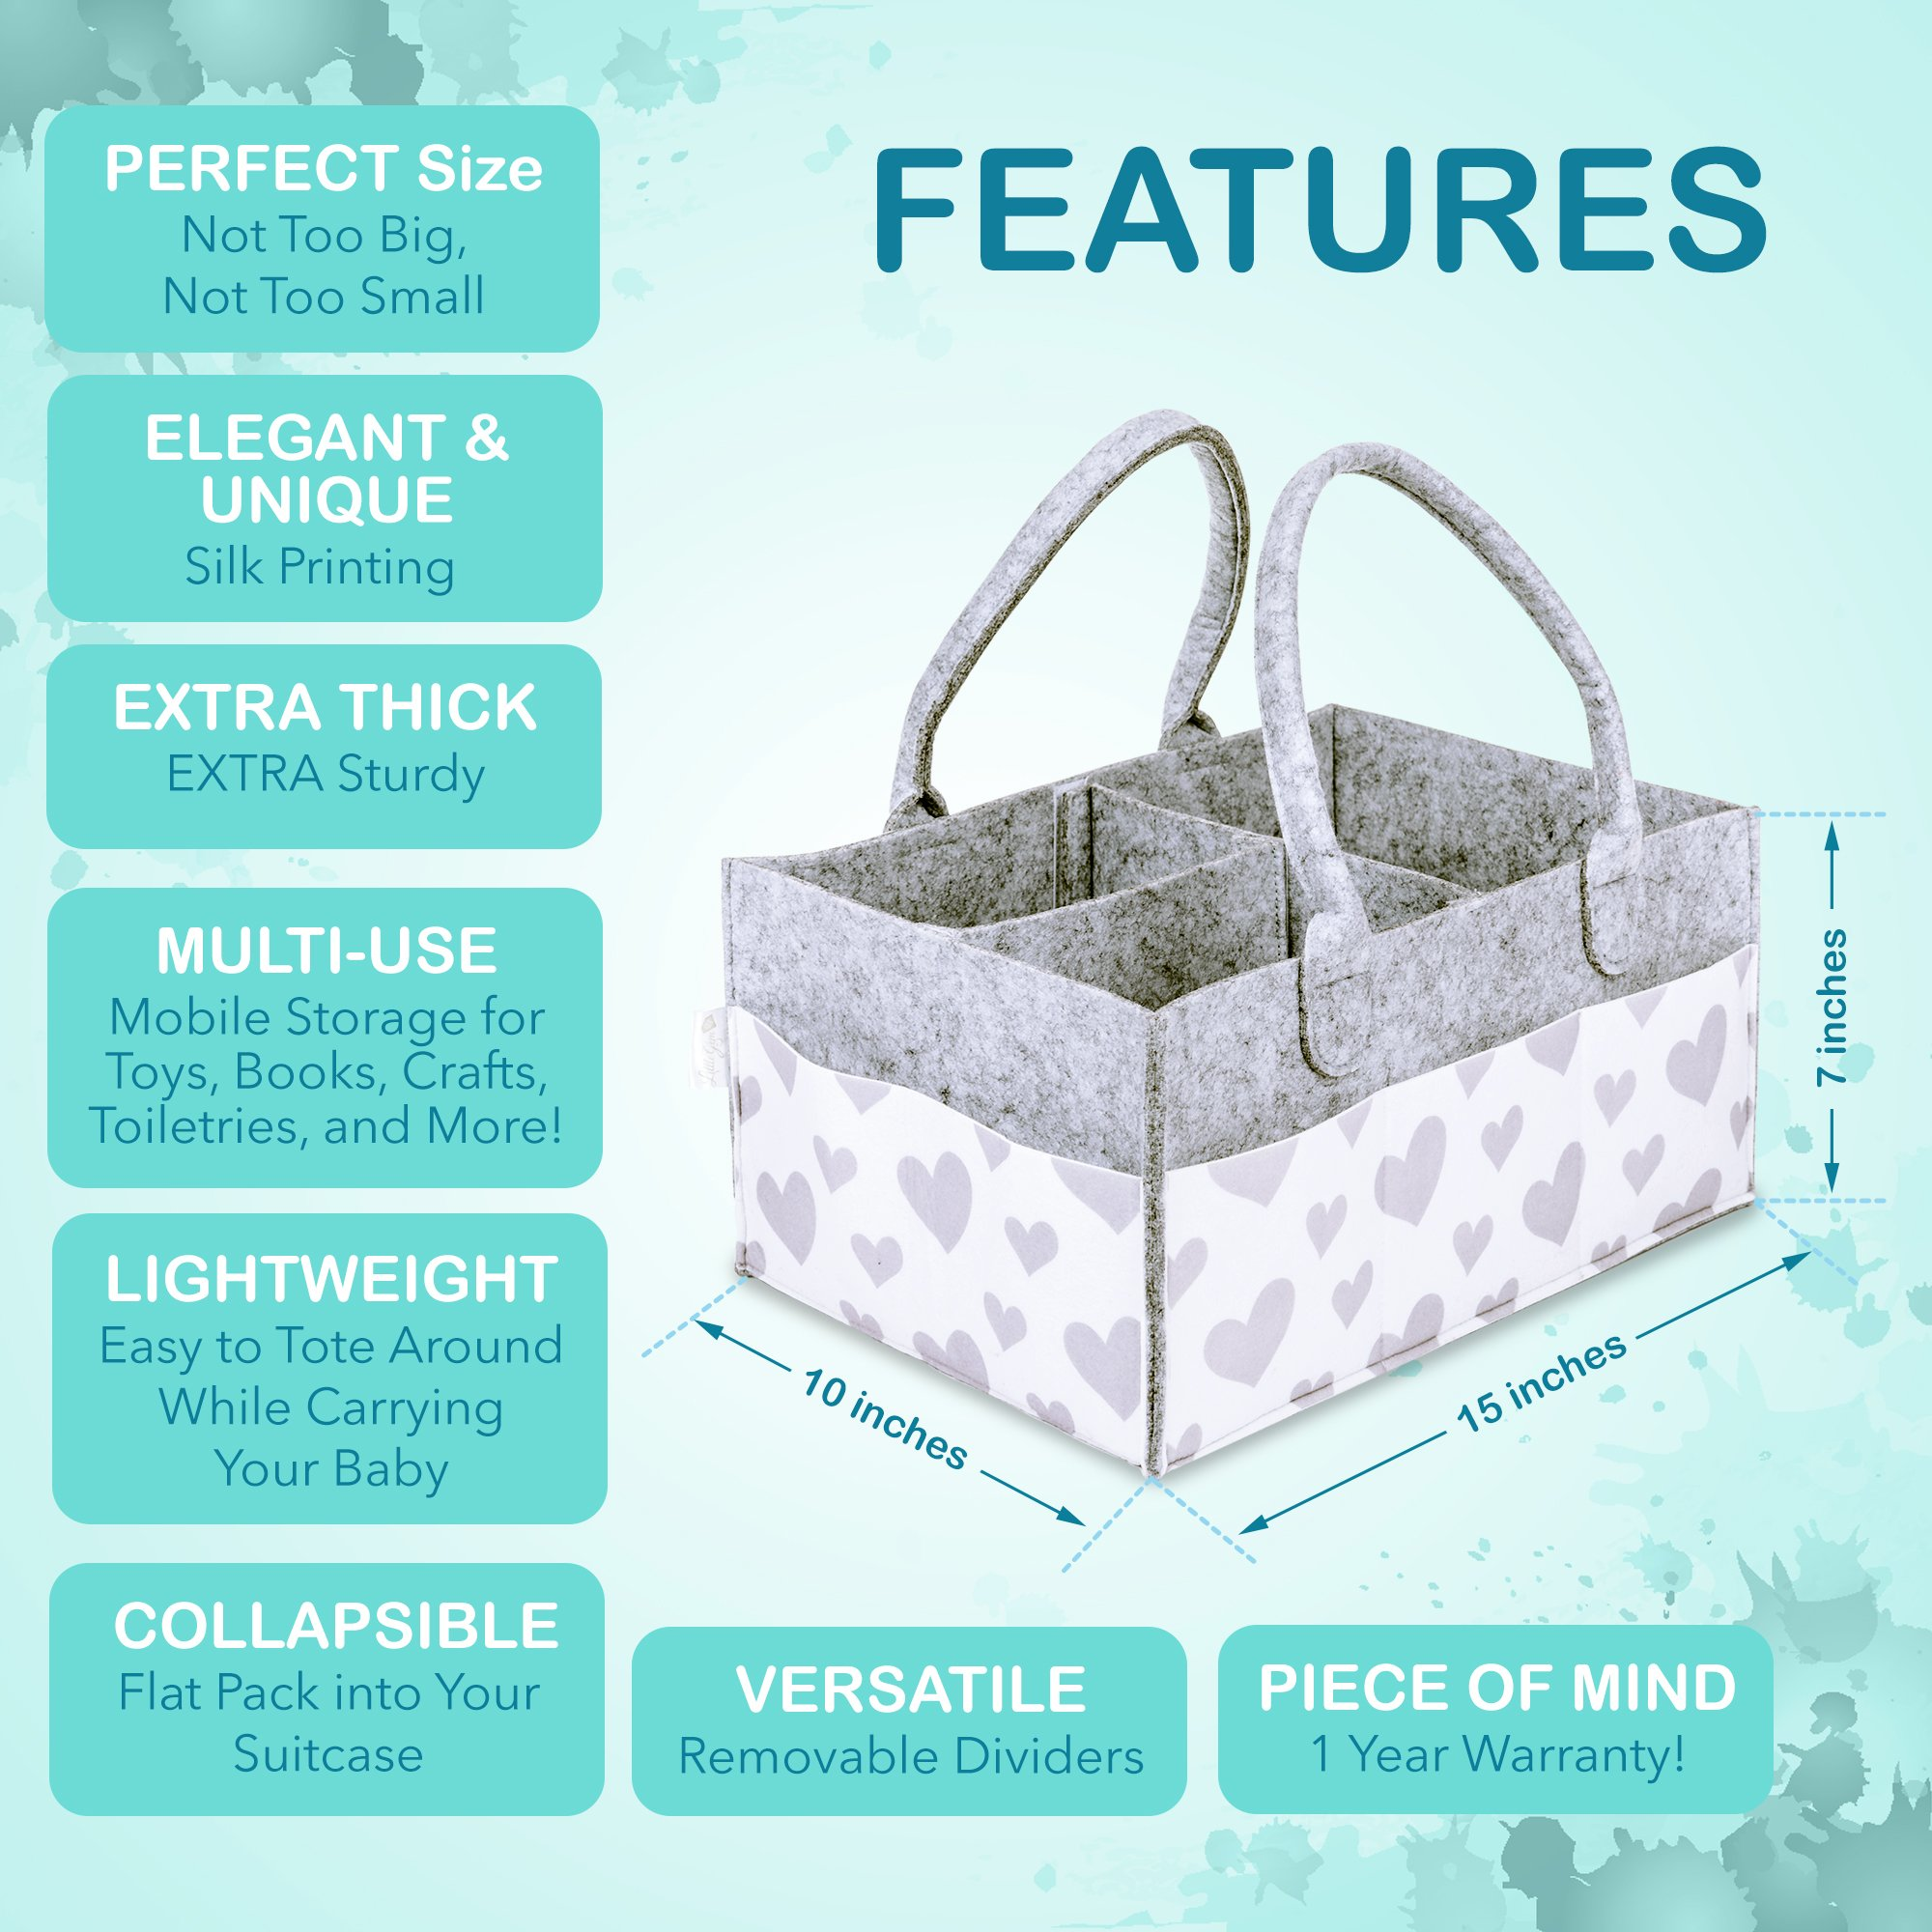 Baby Diaper Caddy and Toy Storage Basket | Portable Diaper Bag for Infants, Boys and Girls | Extra Sturdy & Large Nursery Organizer | Perfect Baby Shower Gift | Baby Registry Must Haves by Littlegem4U (Image #6)